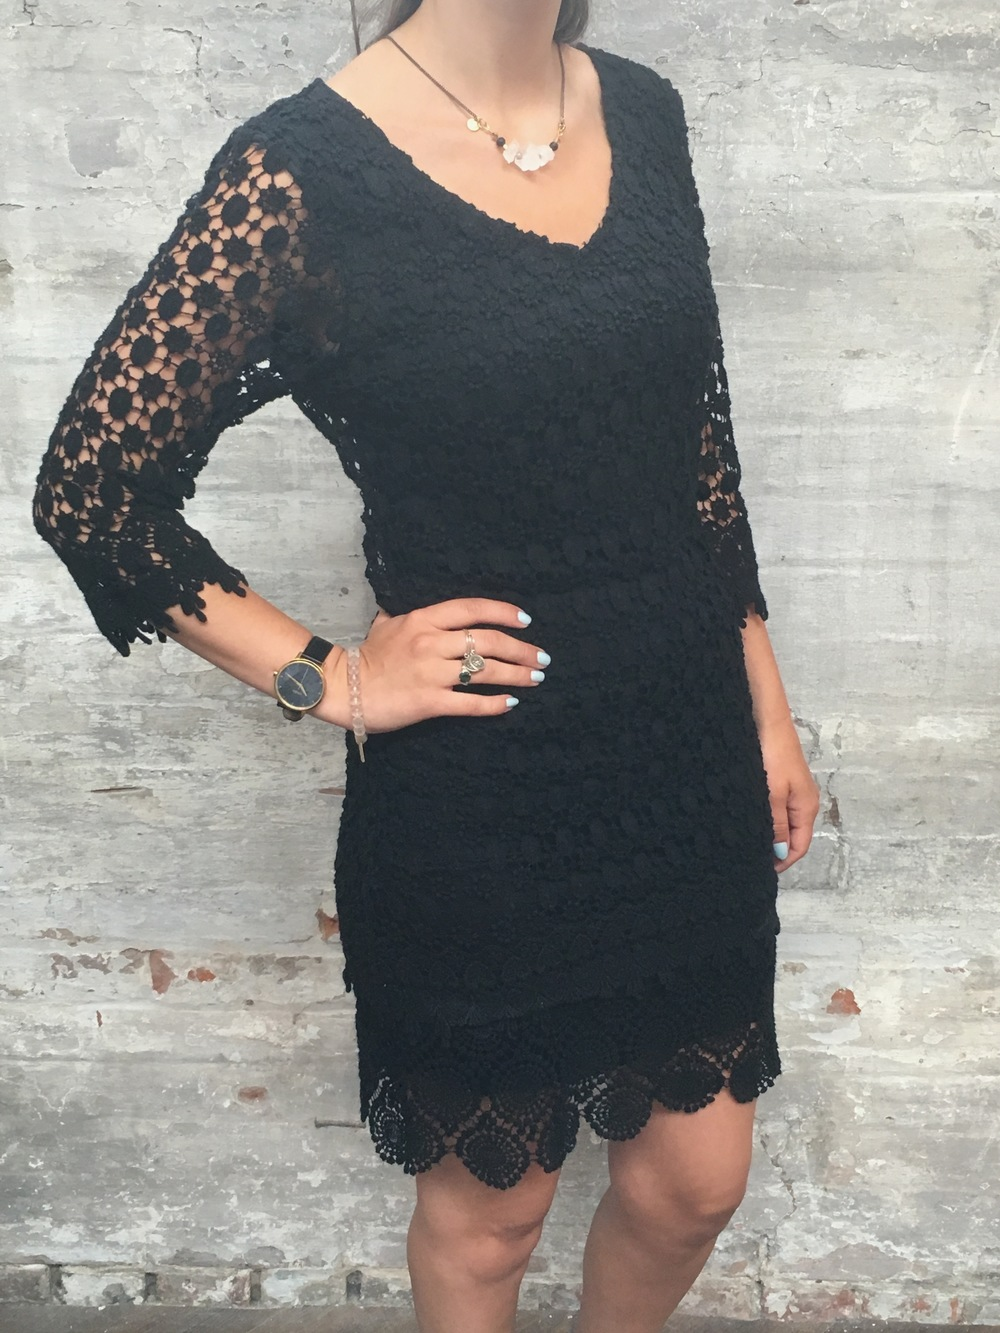 Velvet Lace Dress $298 Hen Gem Necklace $89